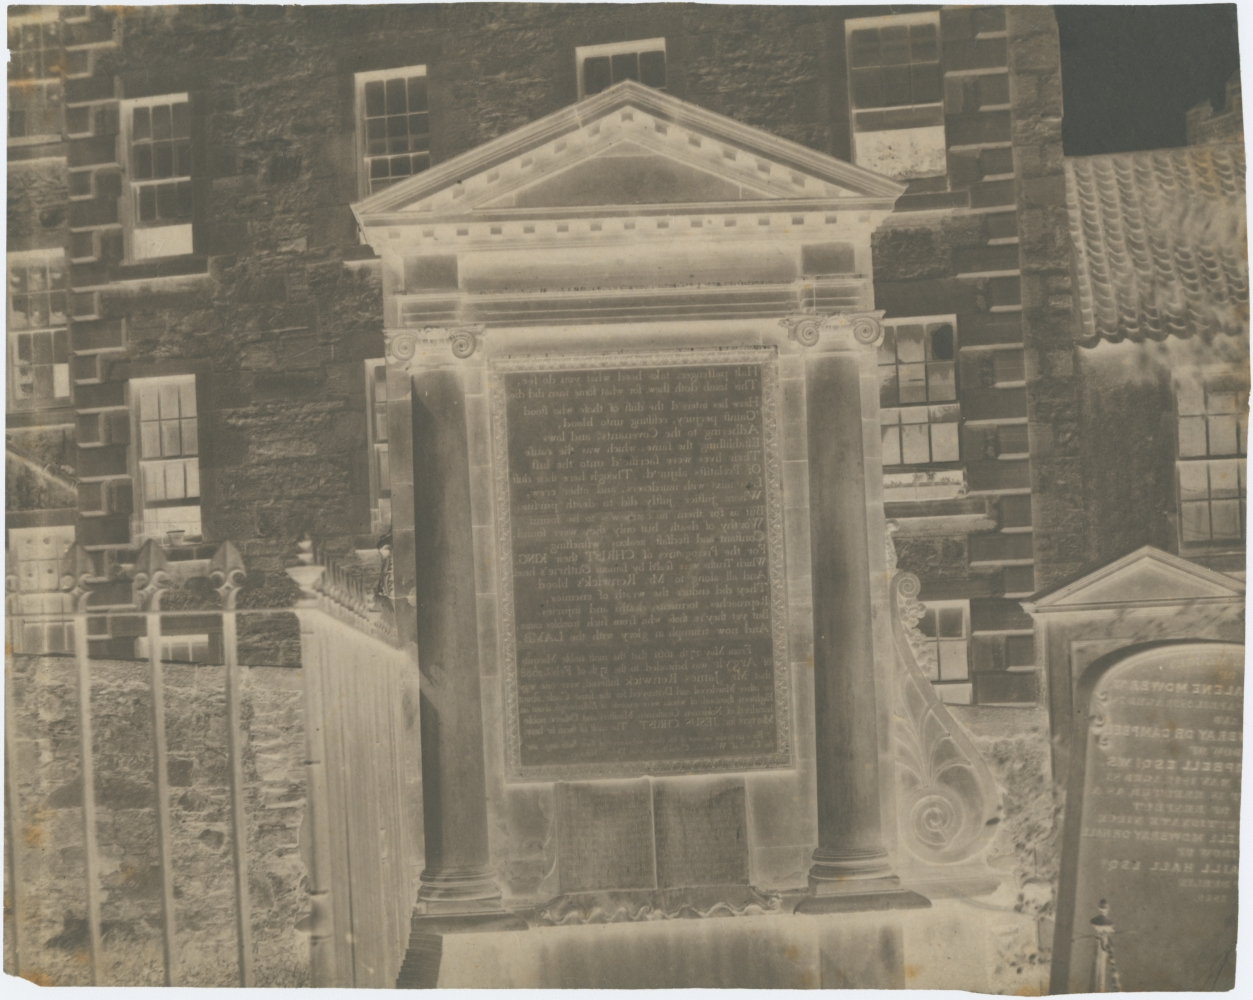 Attributed to Dr. Thomas KEITH (Scottish, 1827-1895) Covenanters' Monument, Greyfriars, 1853-1856 Waxed paper negative 21.4 x 26.6 cm